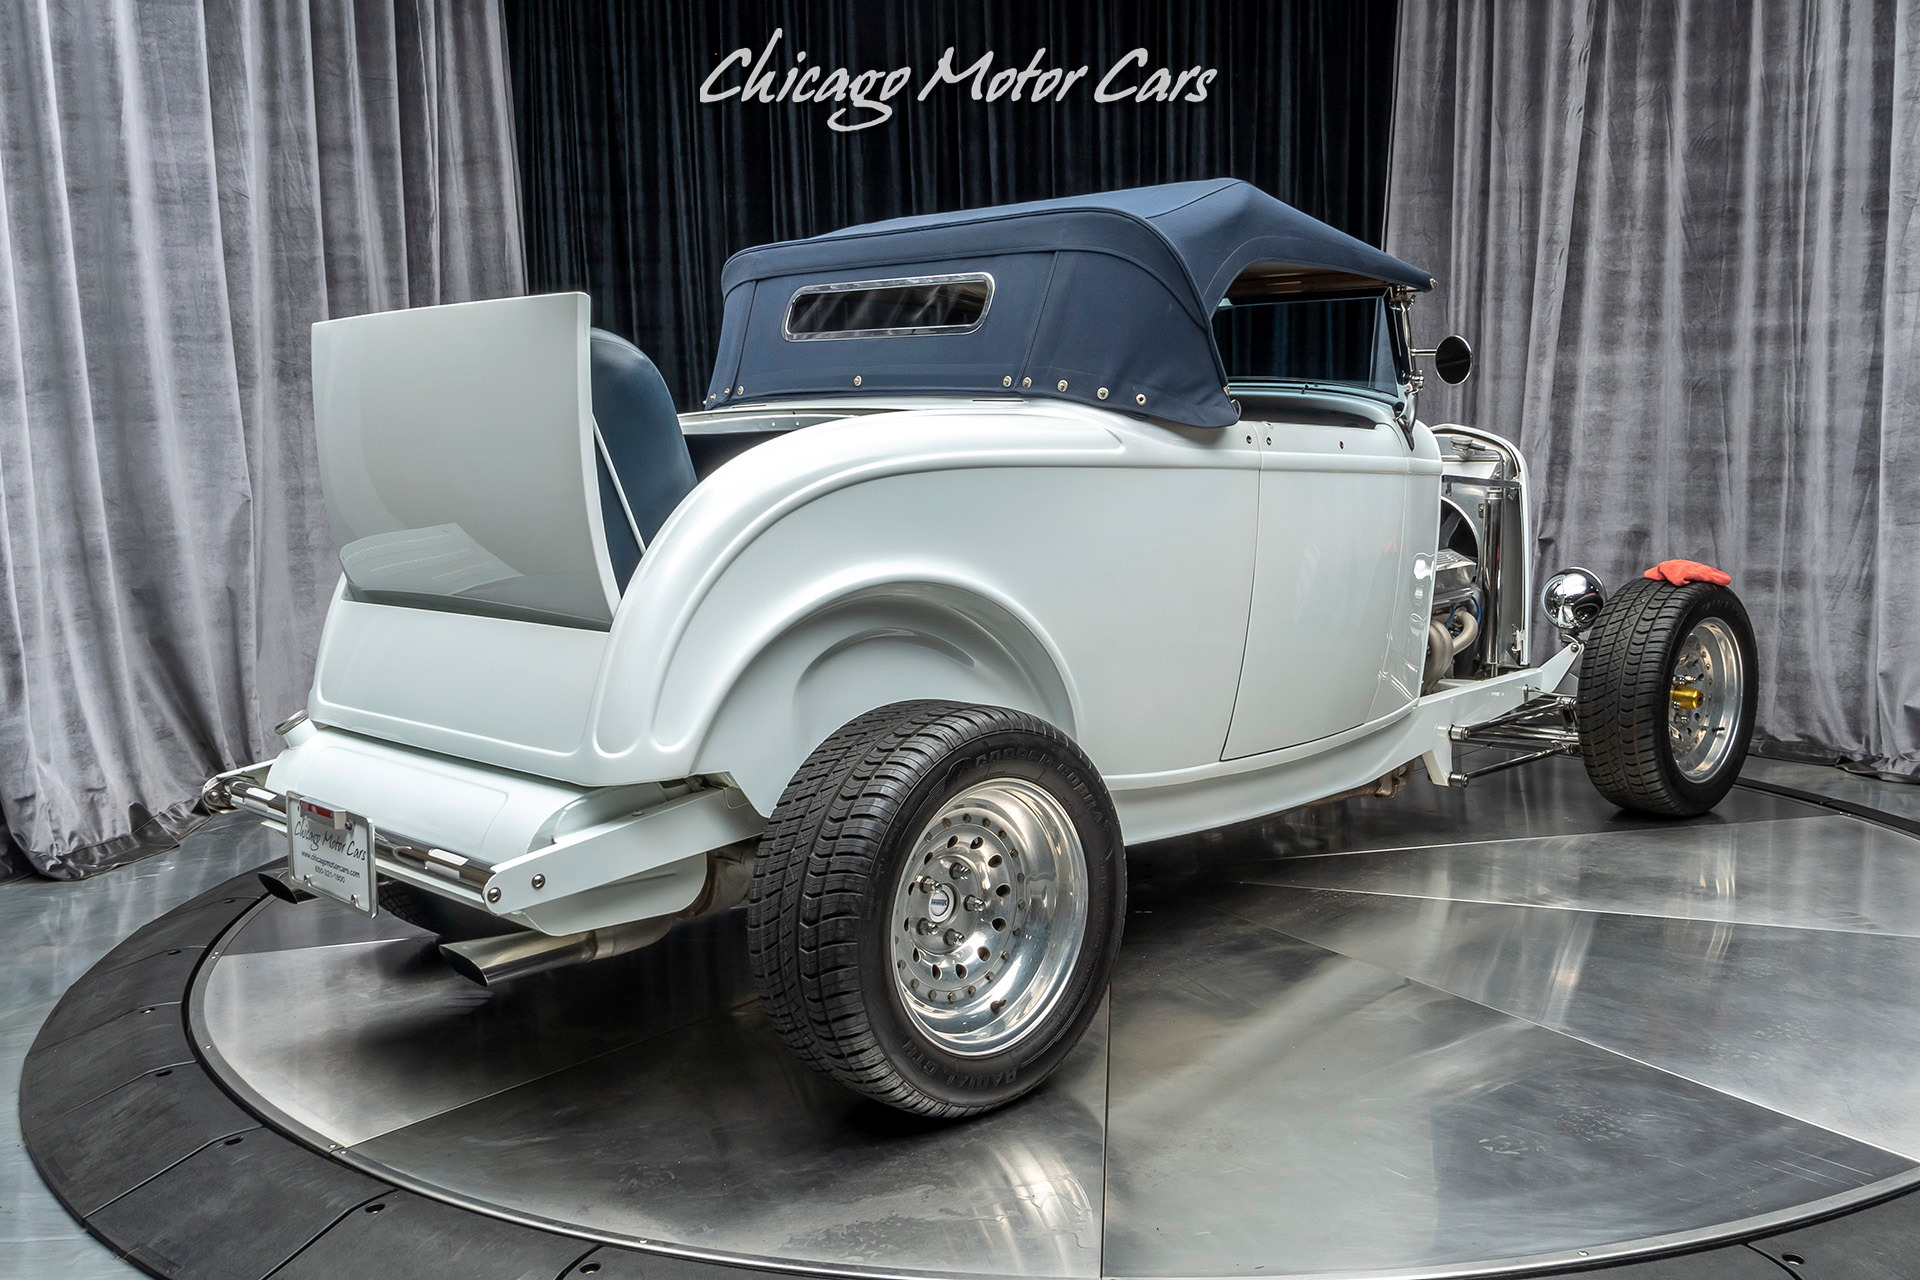 Used-1932-Ford-Custom-Roadster-BUILT-BY-MIDWEST-STREET-CUSTOMS-57-Liter-Chevrolet-350ci-V8-Engine